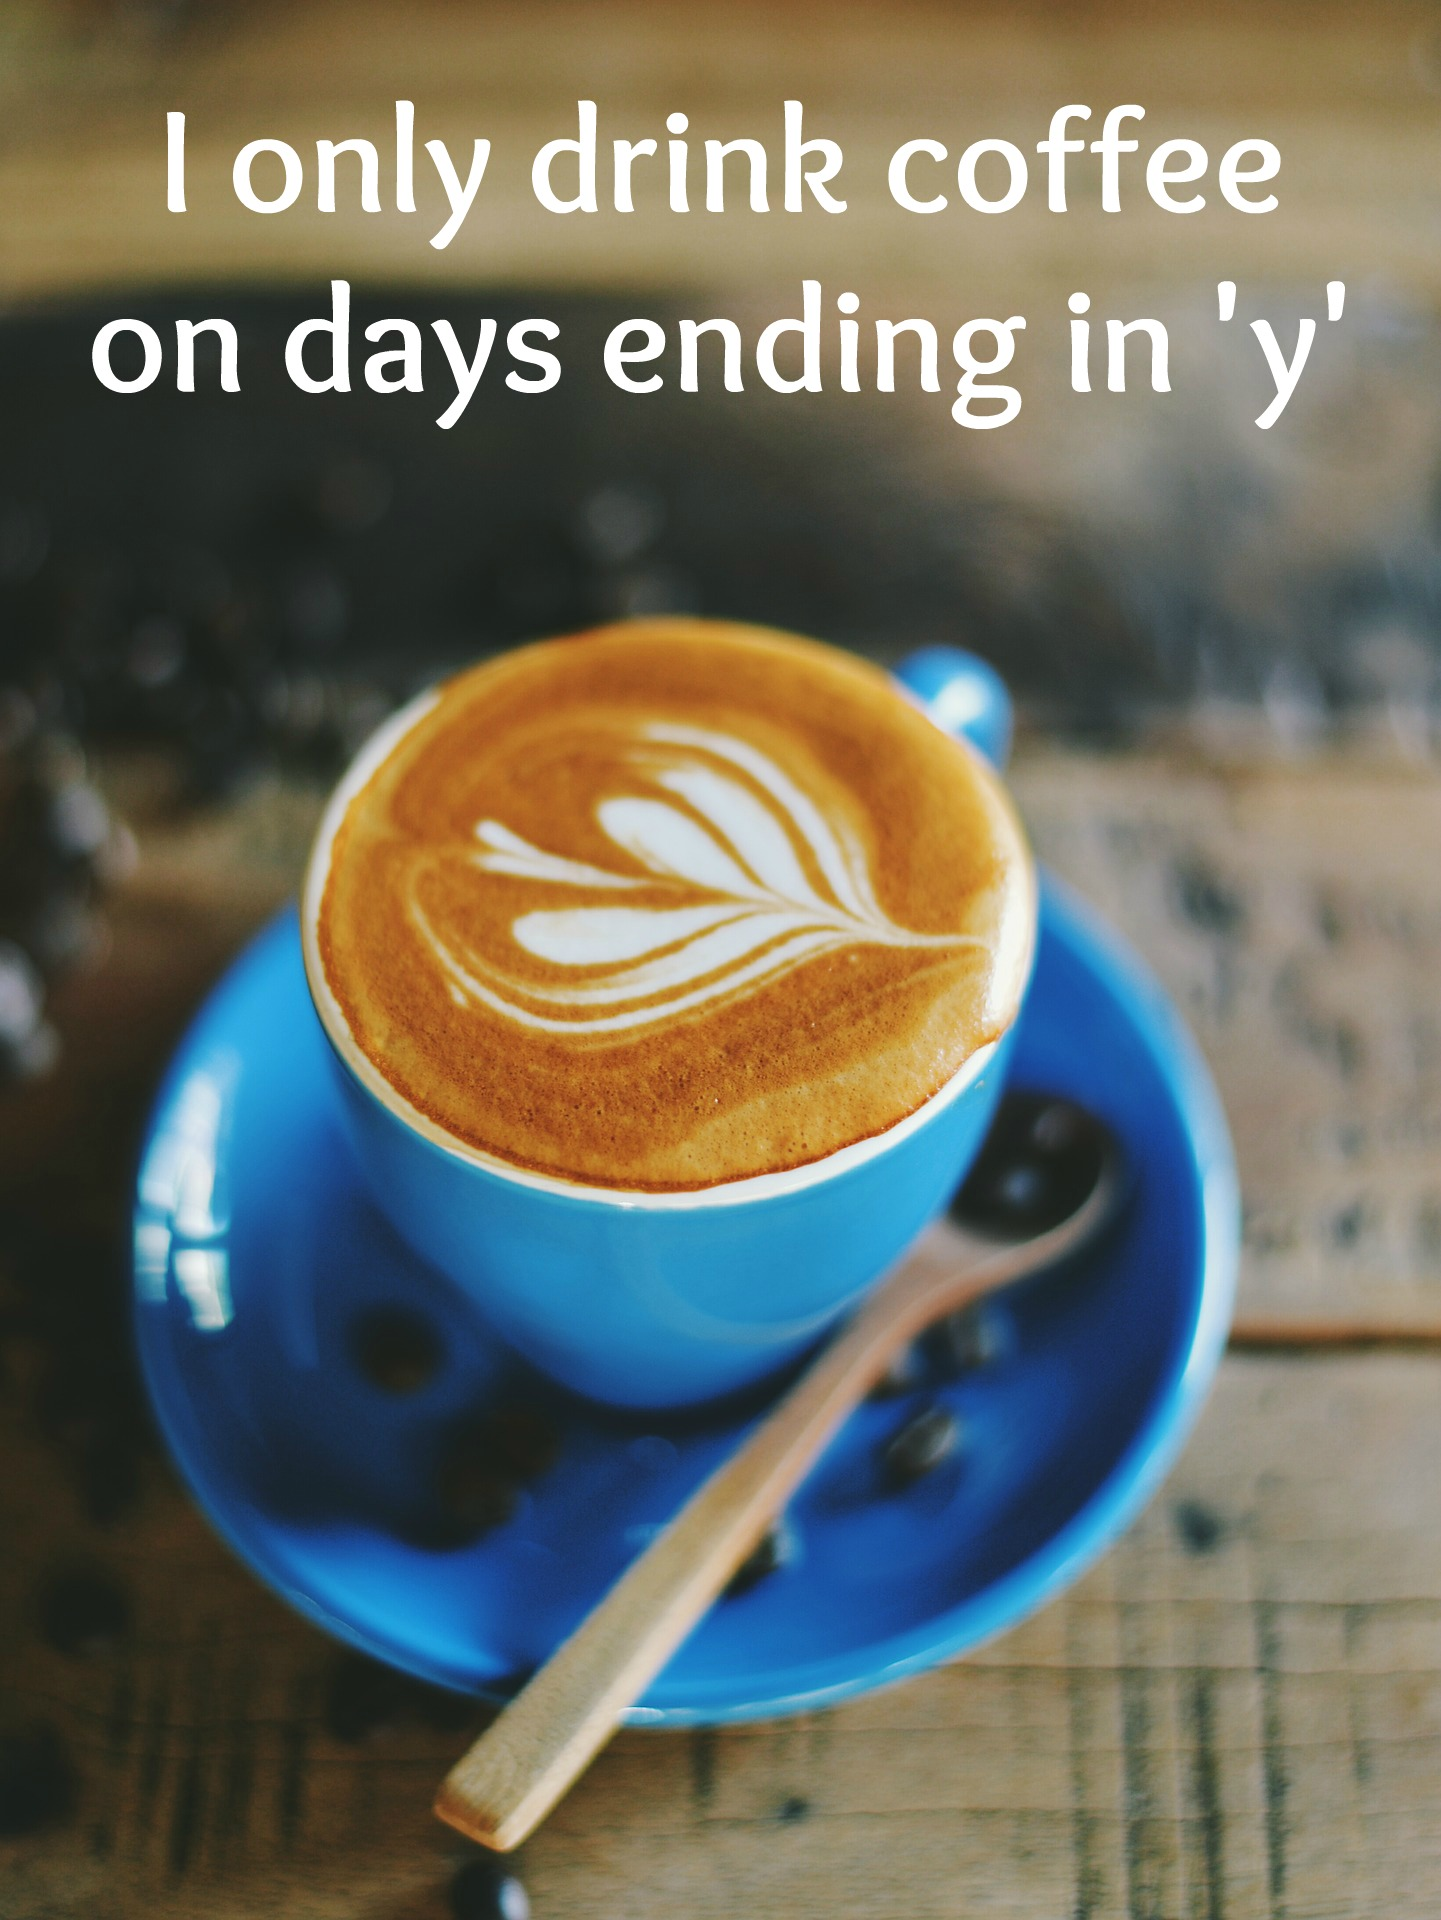 National Coffee Day Is Coming Soon